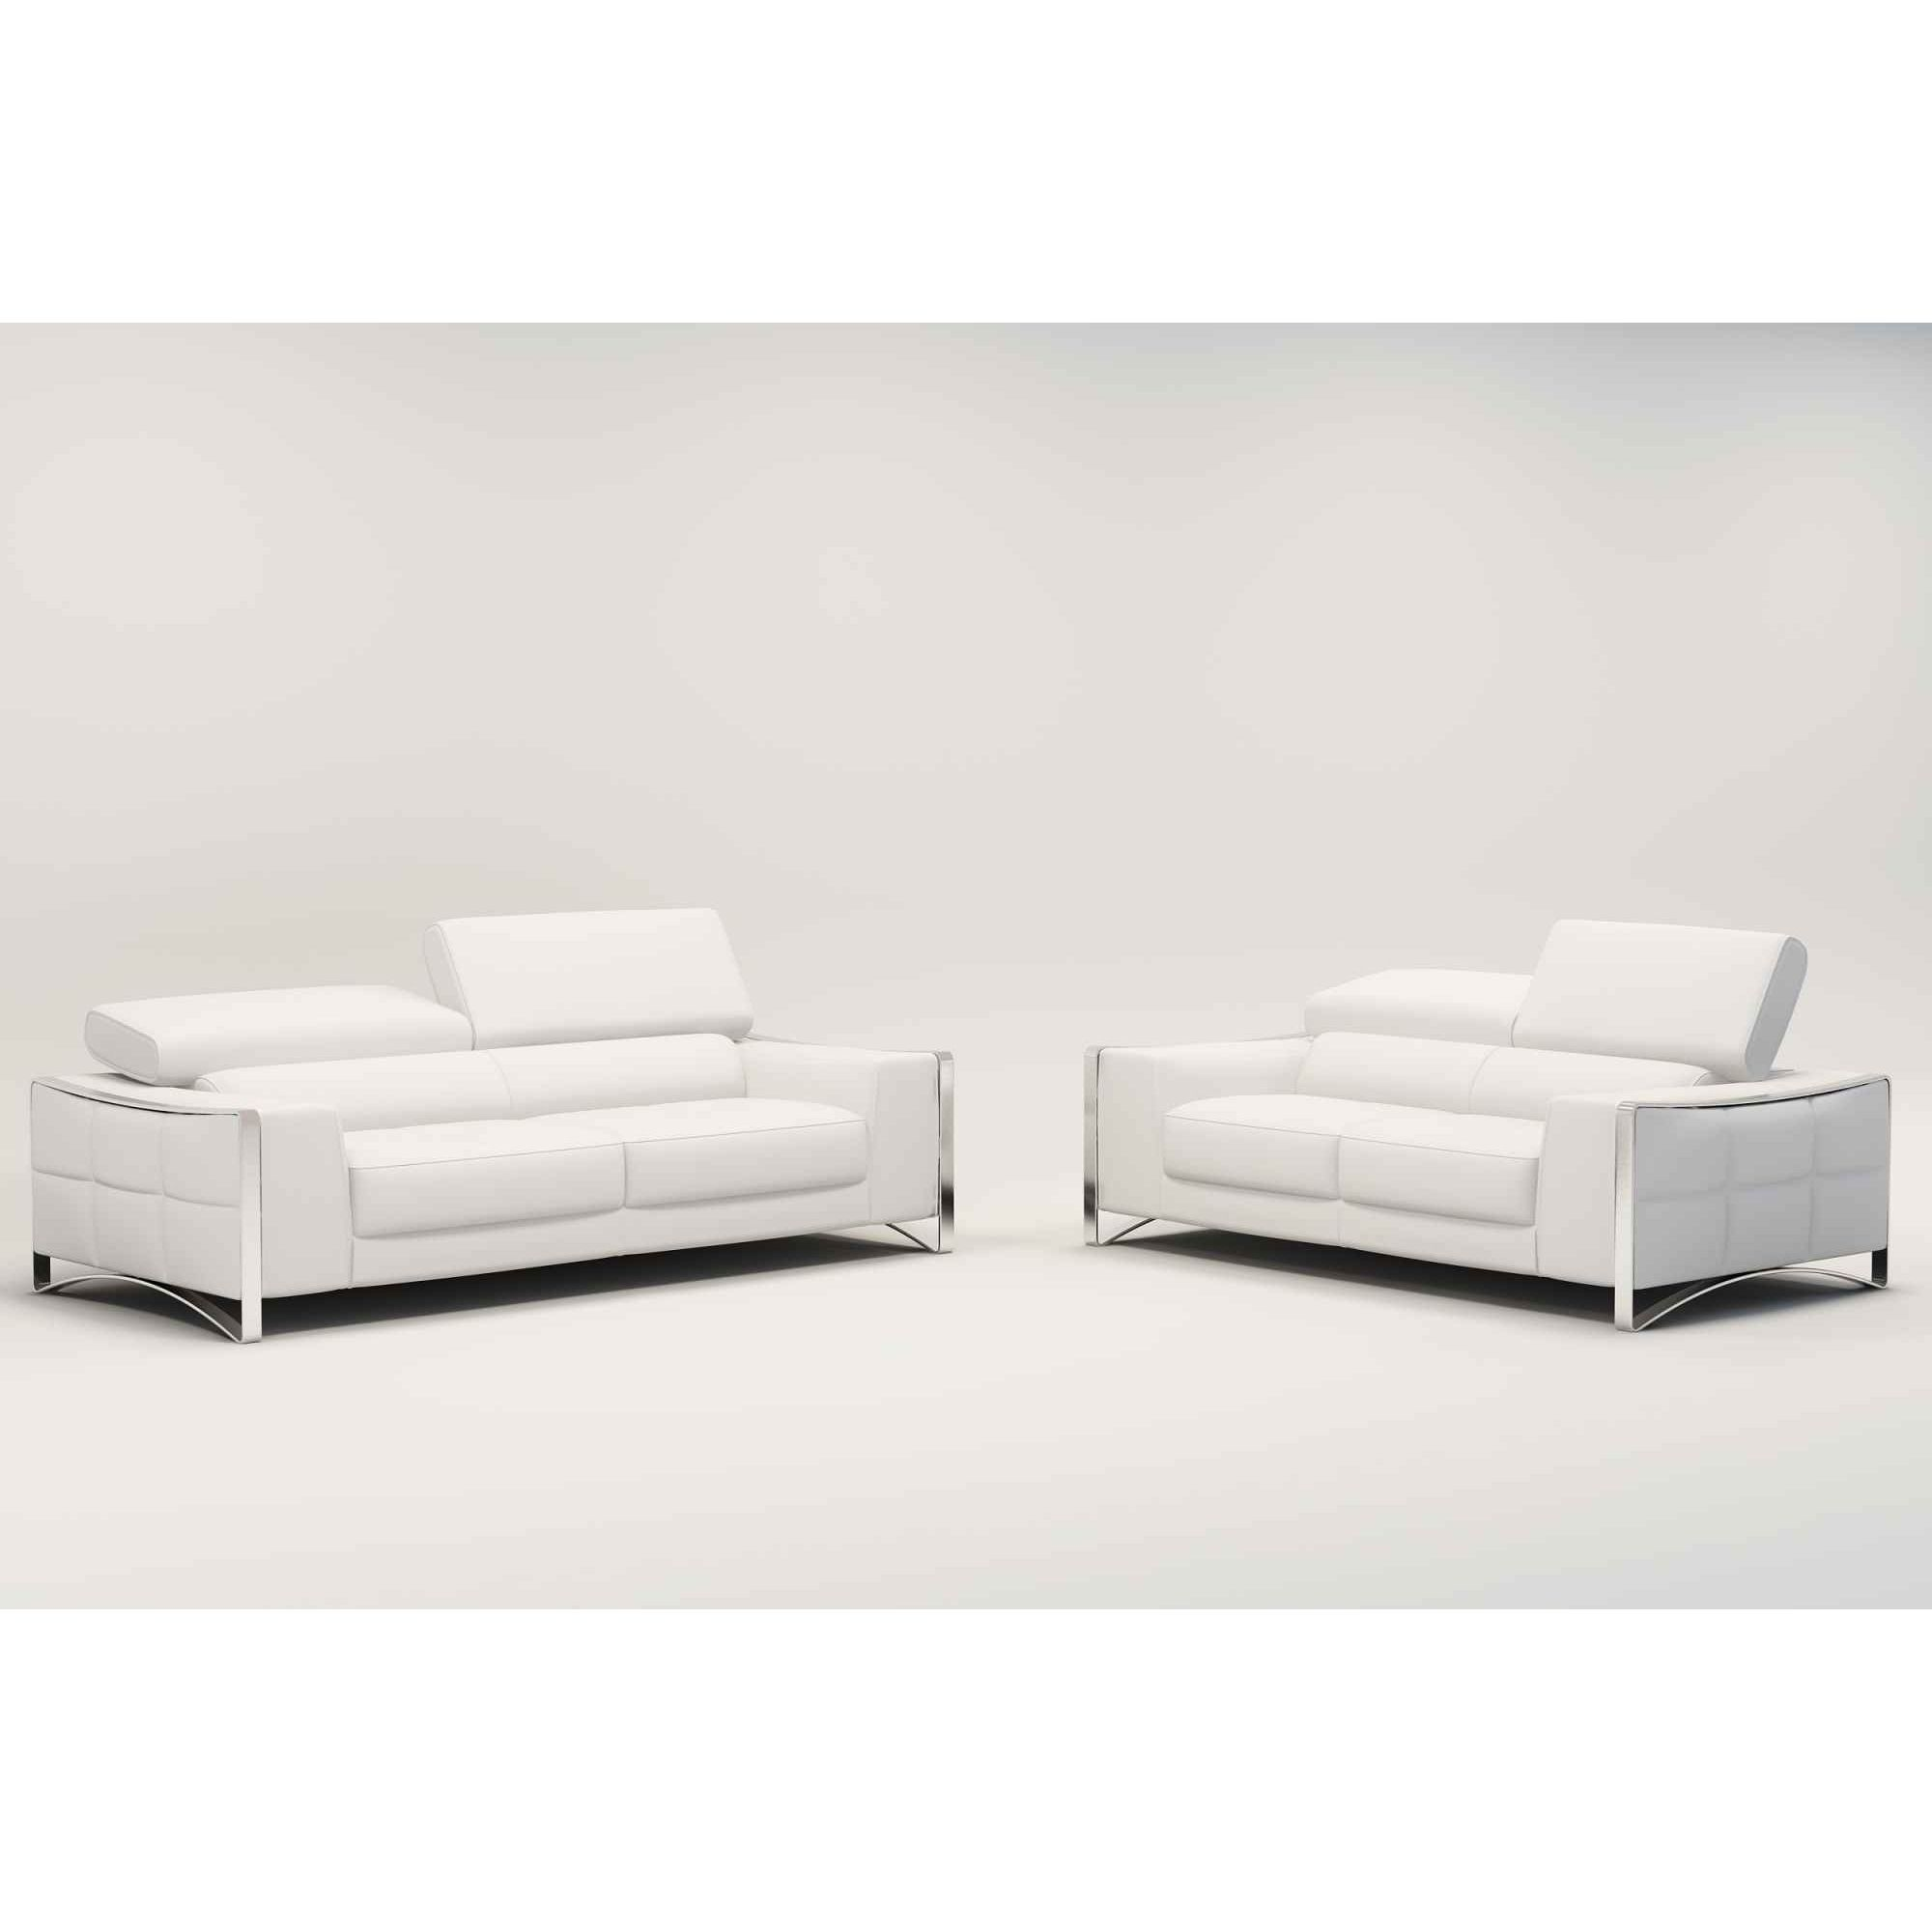 Deco in paris 2 ensemble canape cuir 3 2 places blanc sheyla sheyla blanc c - Canape blanc 3 places ...